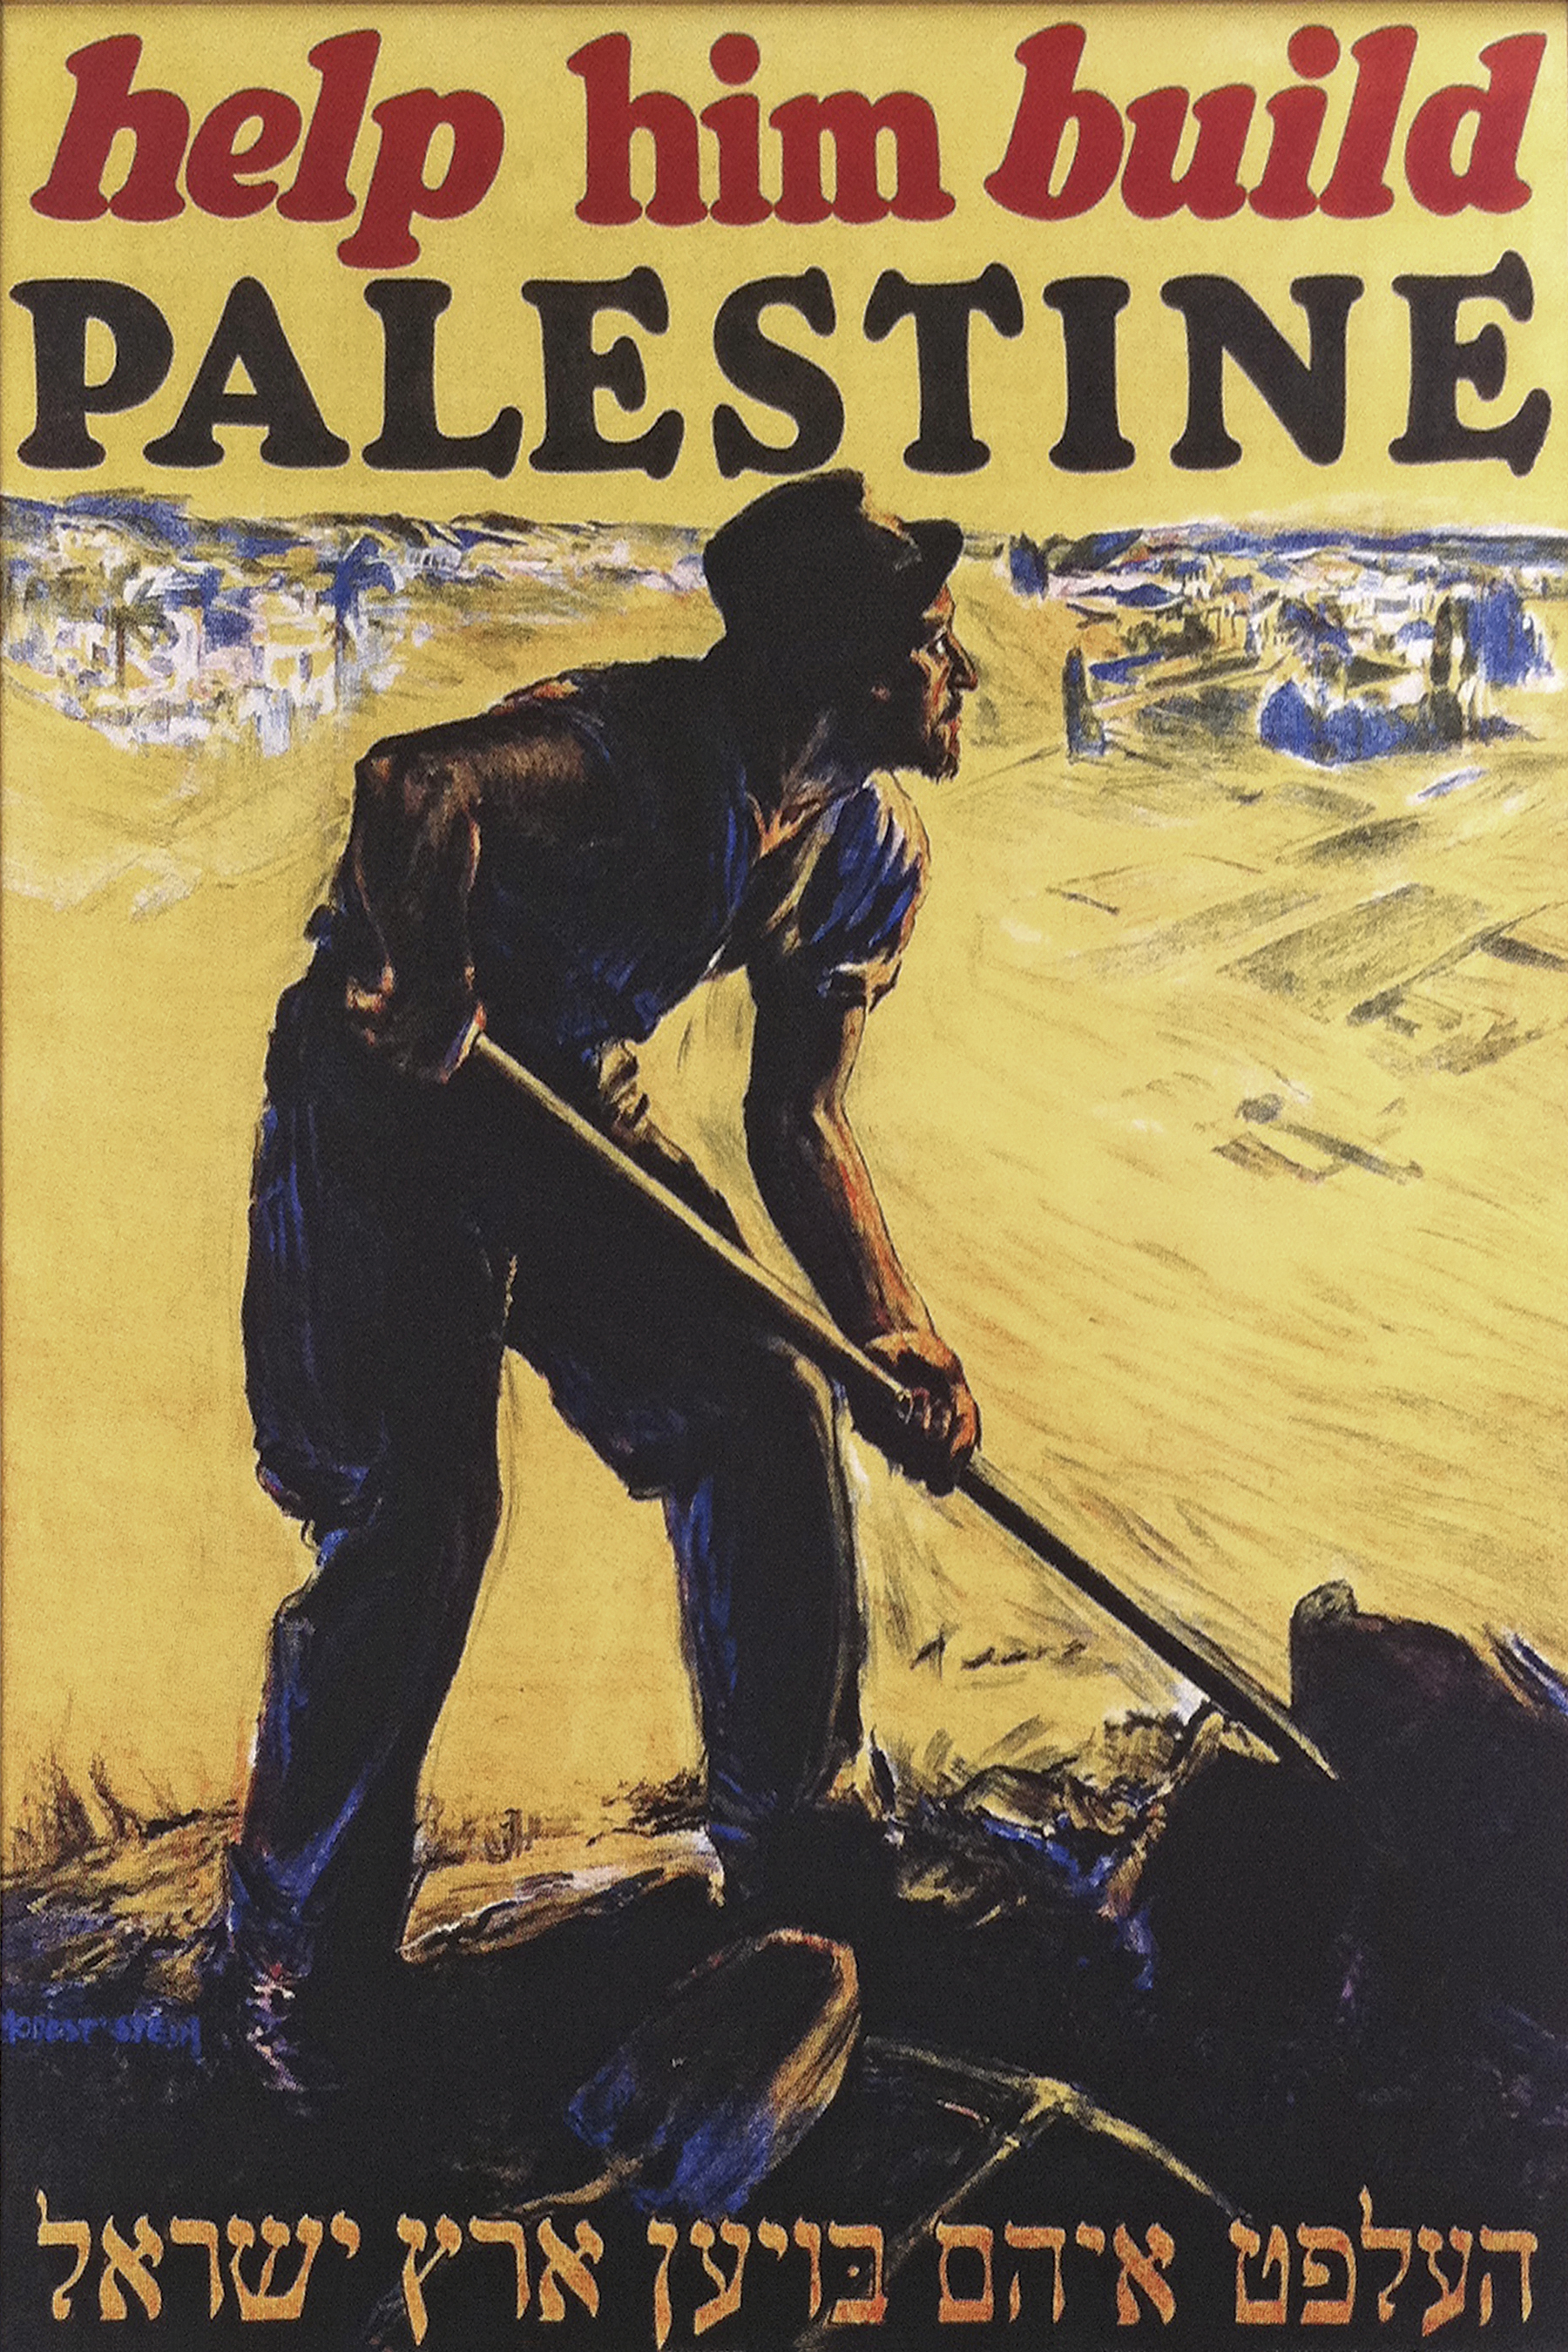 Httpwww Overlordsofchaos Comhtmlorigin Of The Word Jew Html: Poster - Palestine On Pinterest By Pospag